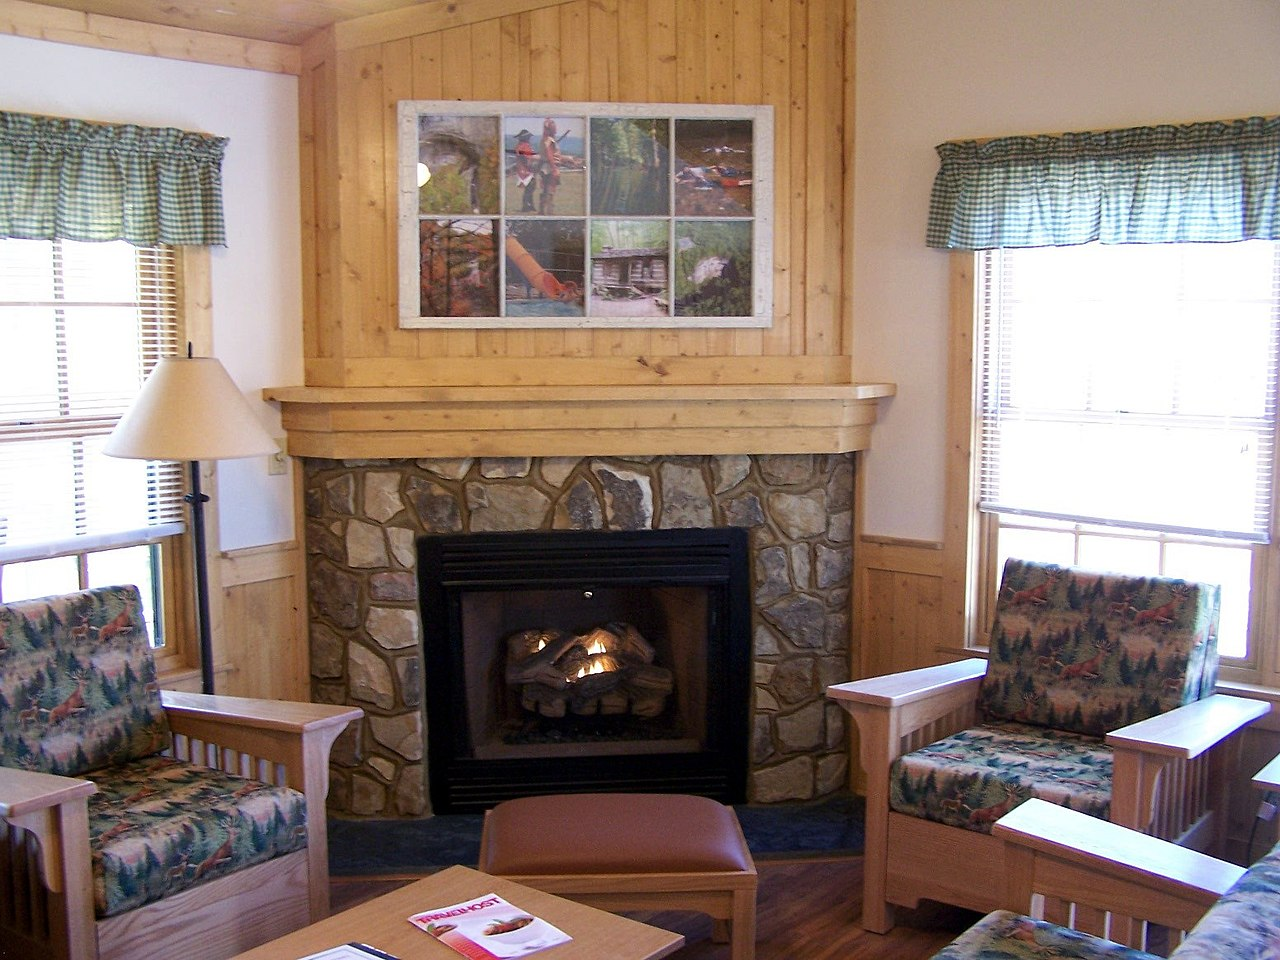 file nt typical gas log fireplace 5114230942 jpg wikimedia commons